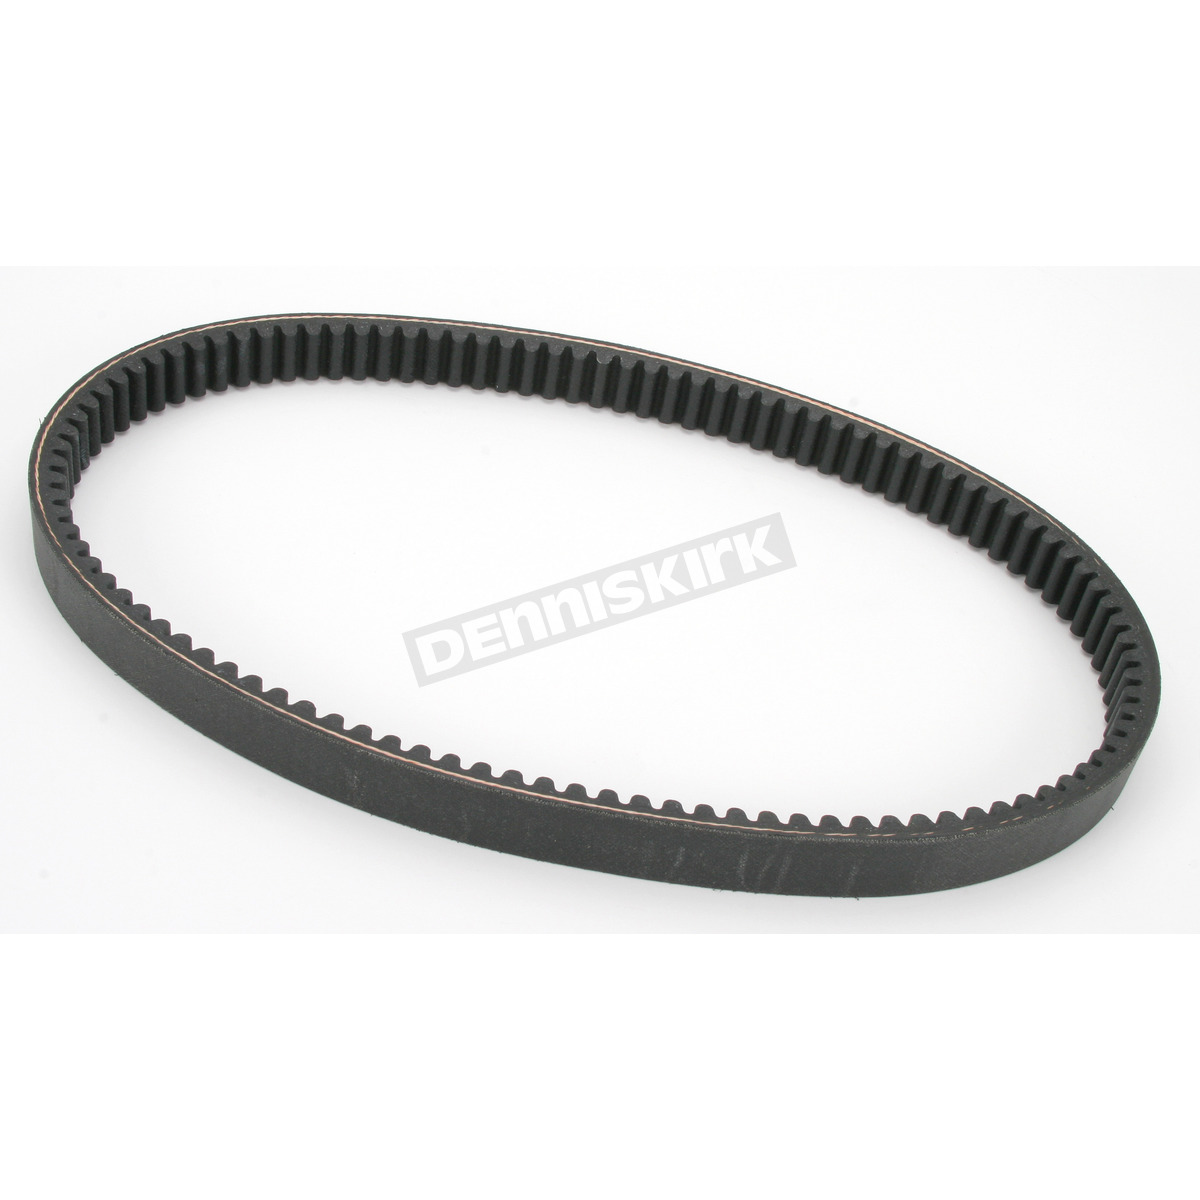 1 1/4 in  x 46 11/16 in  Performer Drive Belt - LM-752